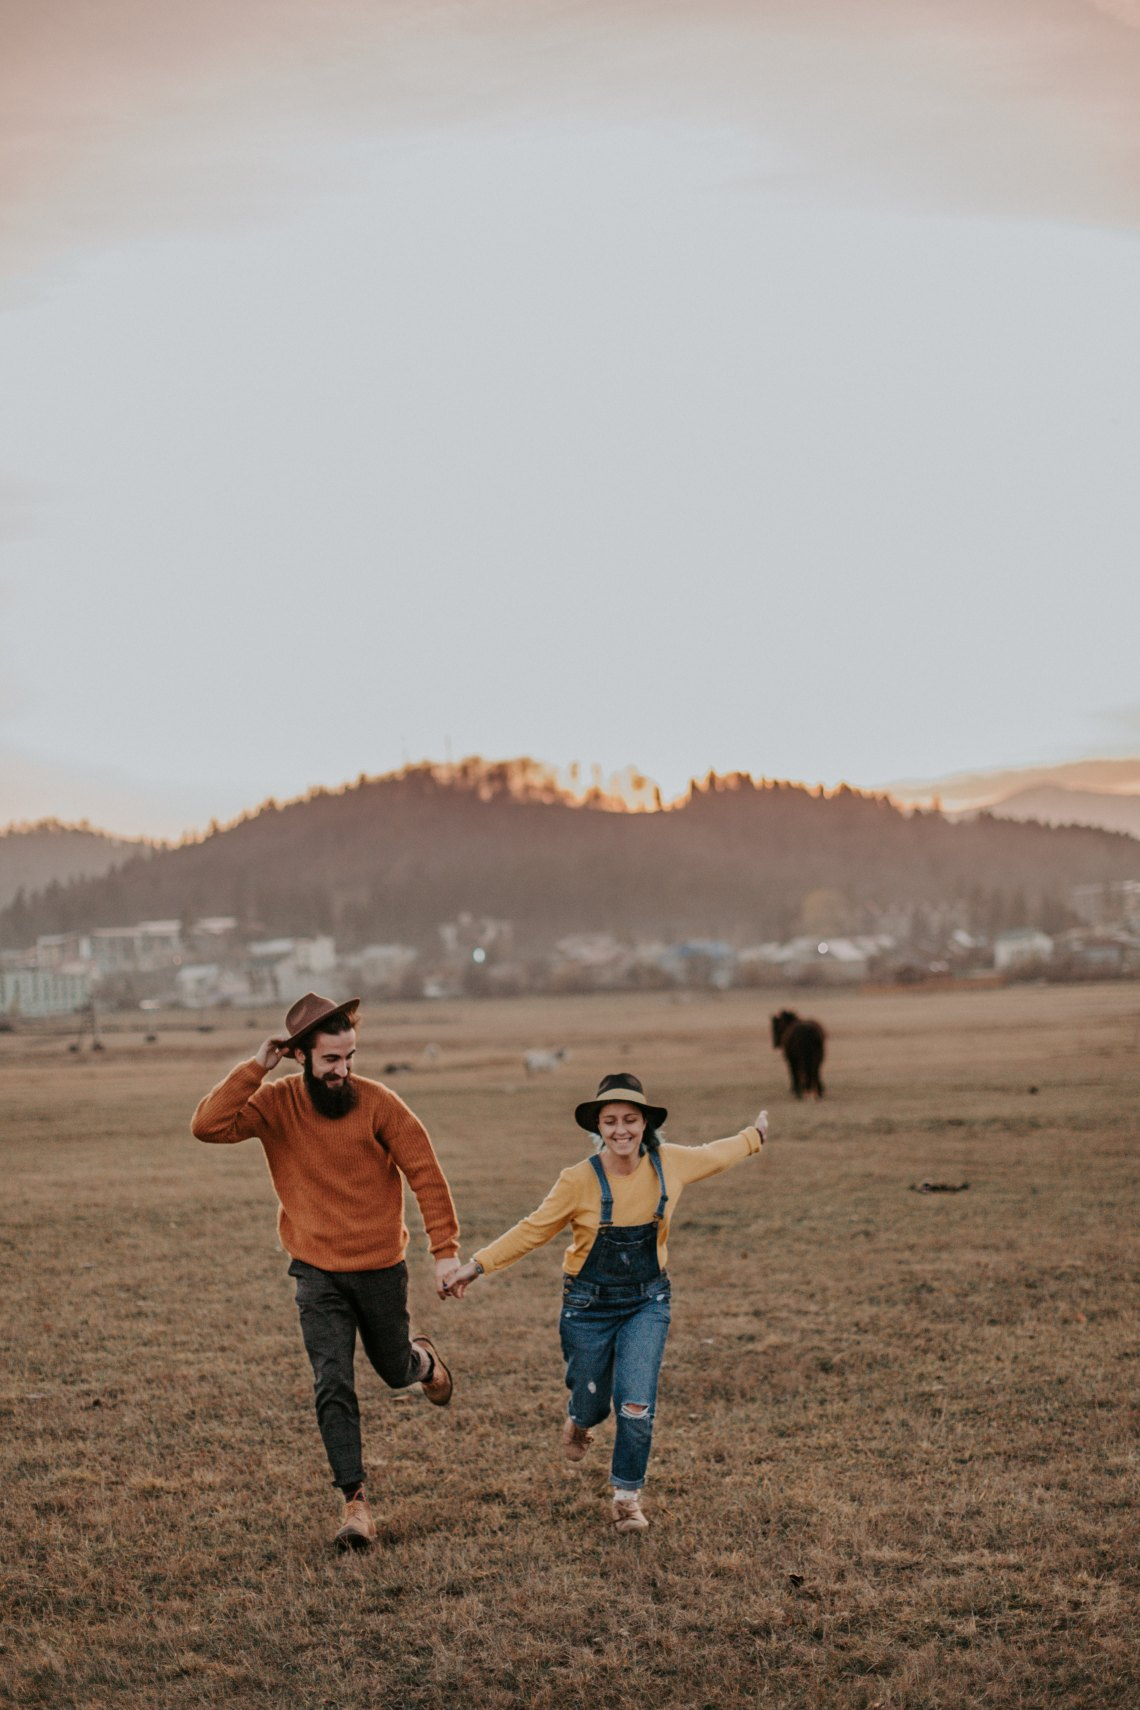 couple running happily through a field